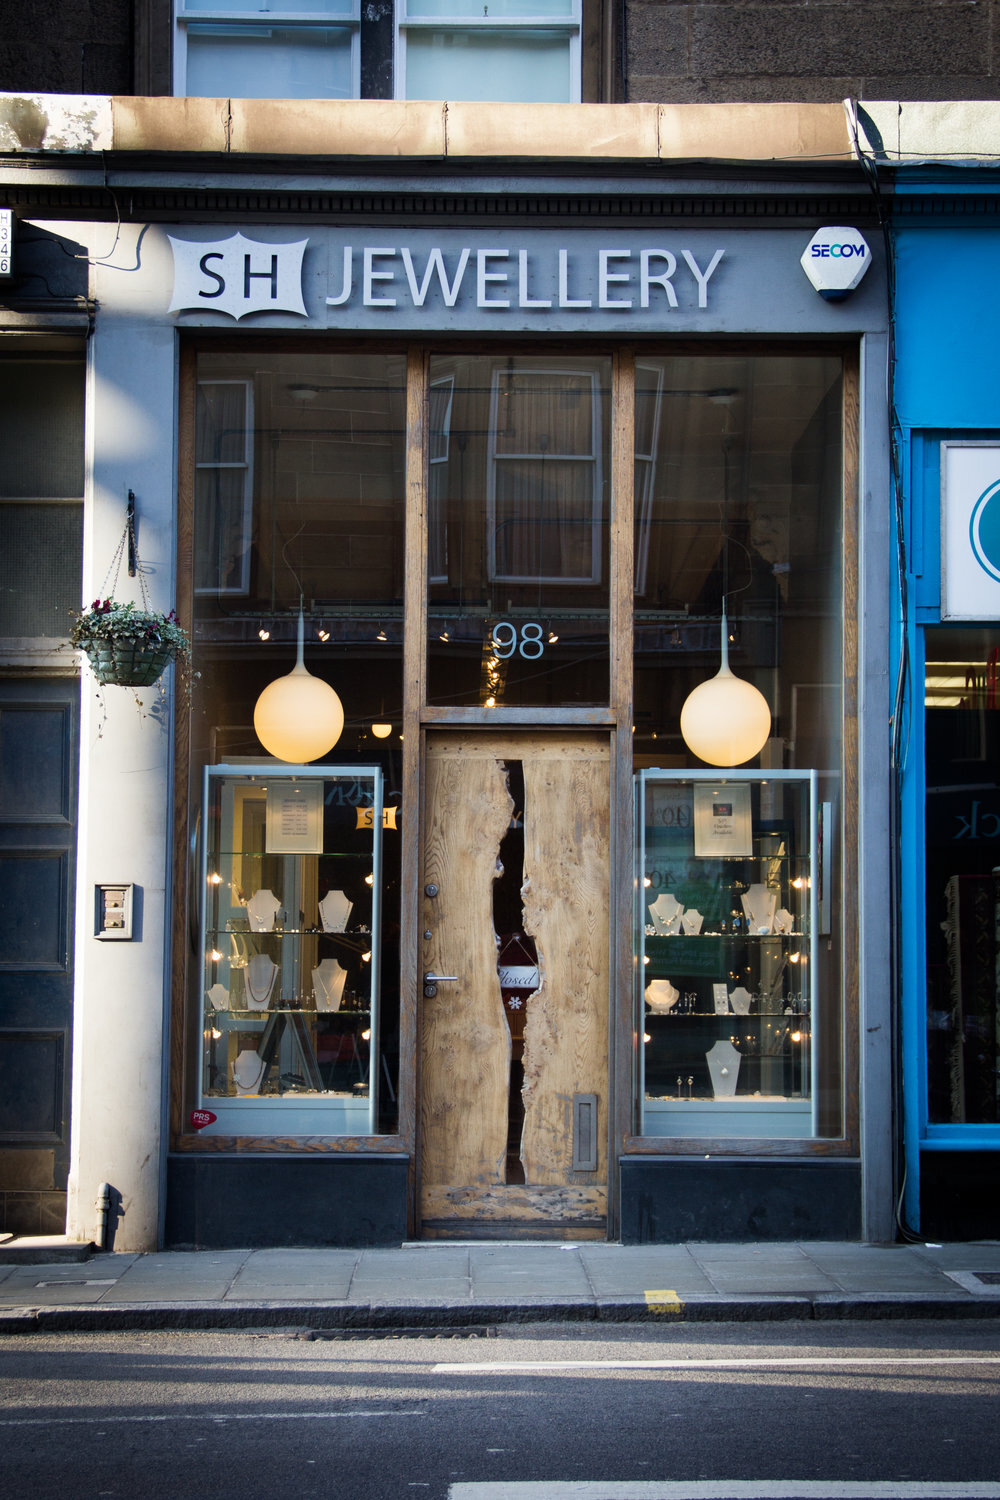 SH Jewellery in Morningside owned and ran by Sarah Hutchison